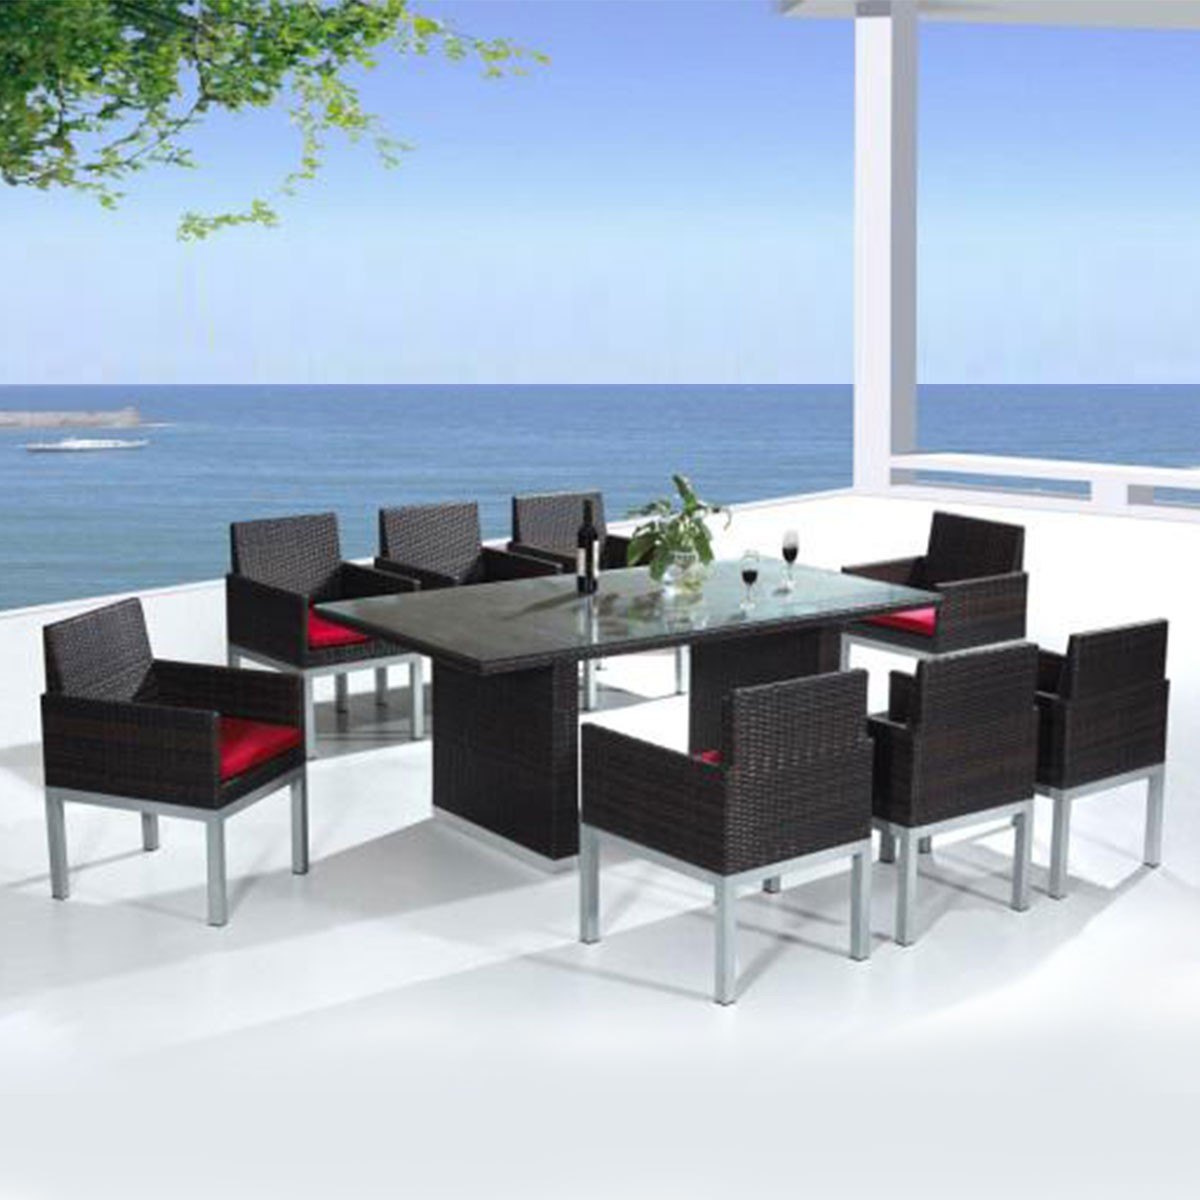 PE Rattan 9 Pieces Dining Set: 1 * Dining Table, 8 * Chair (LLS-6060+1060)